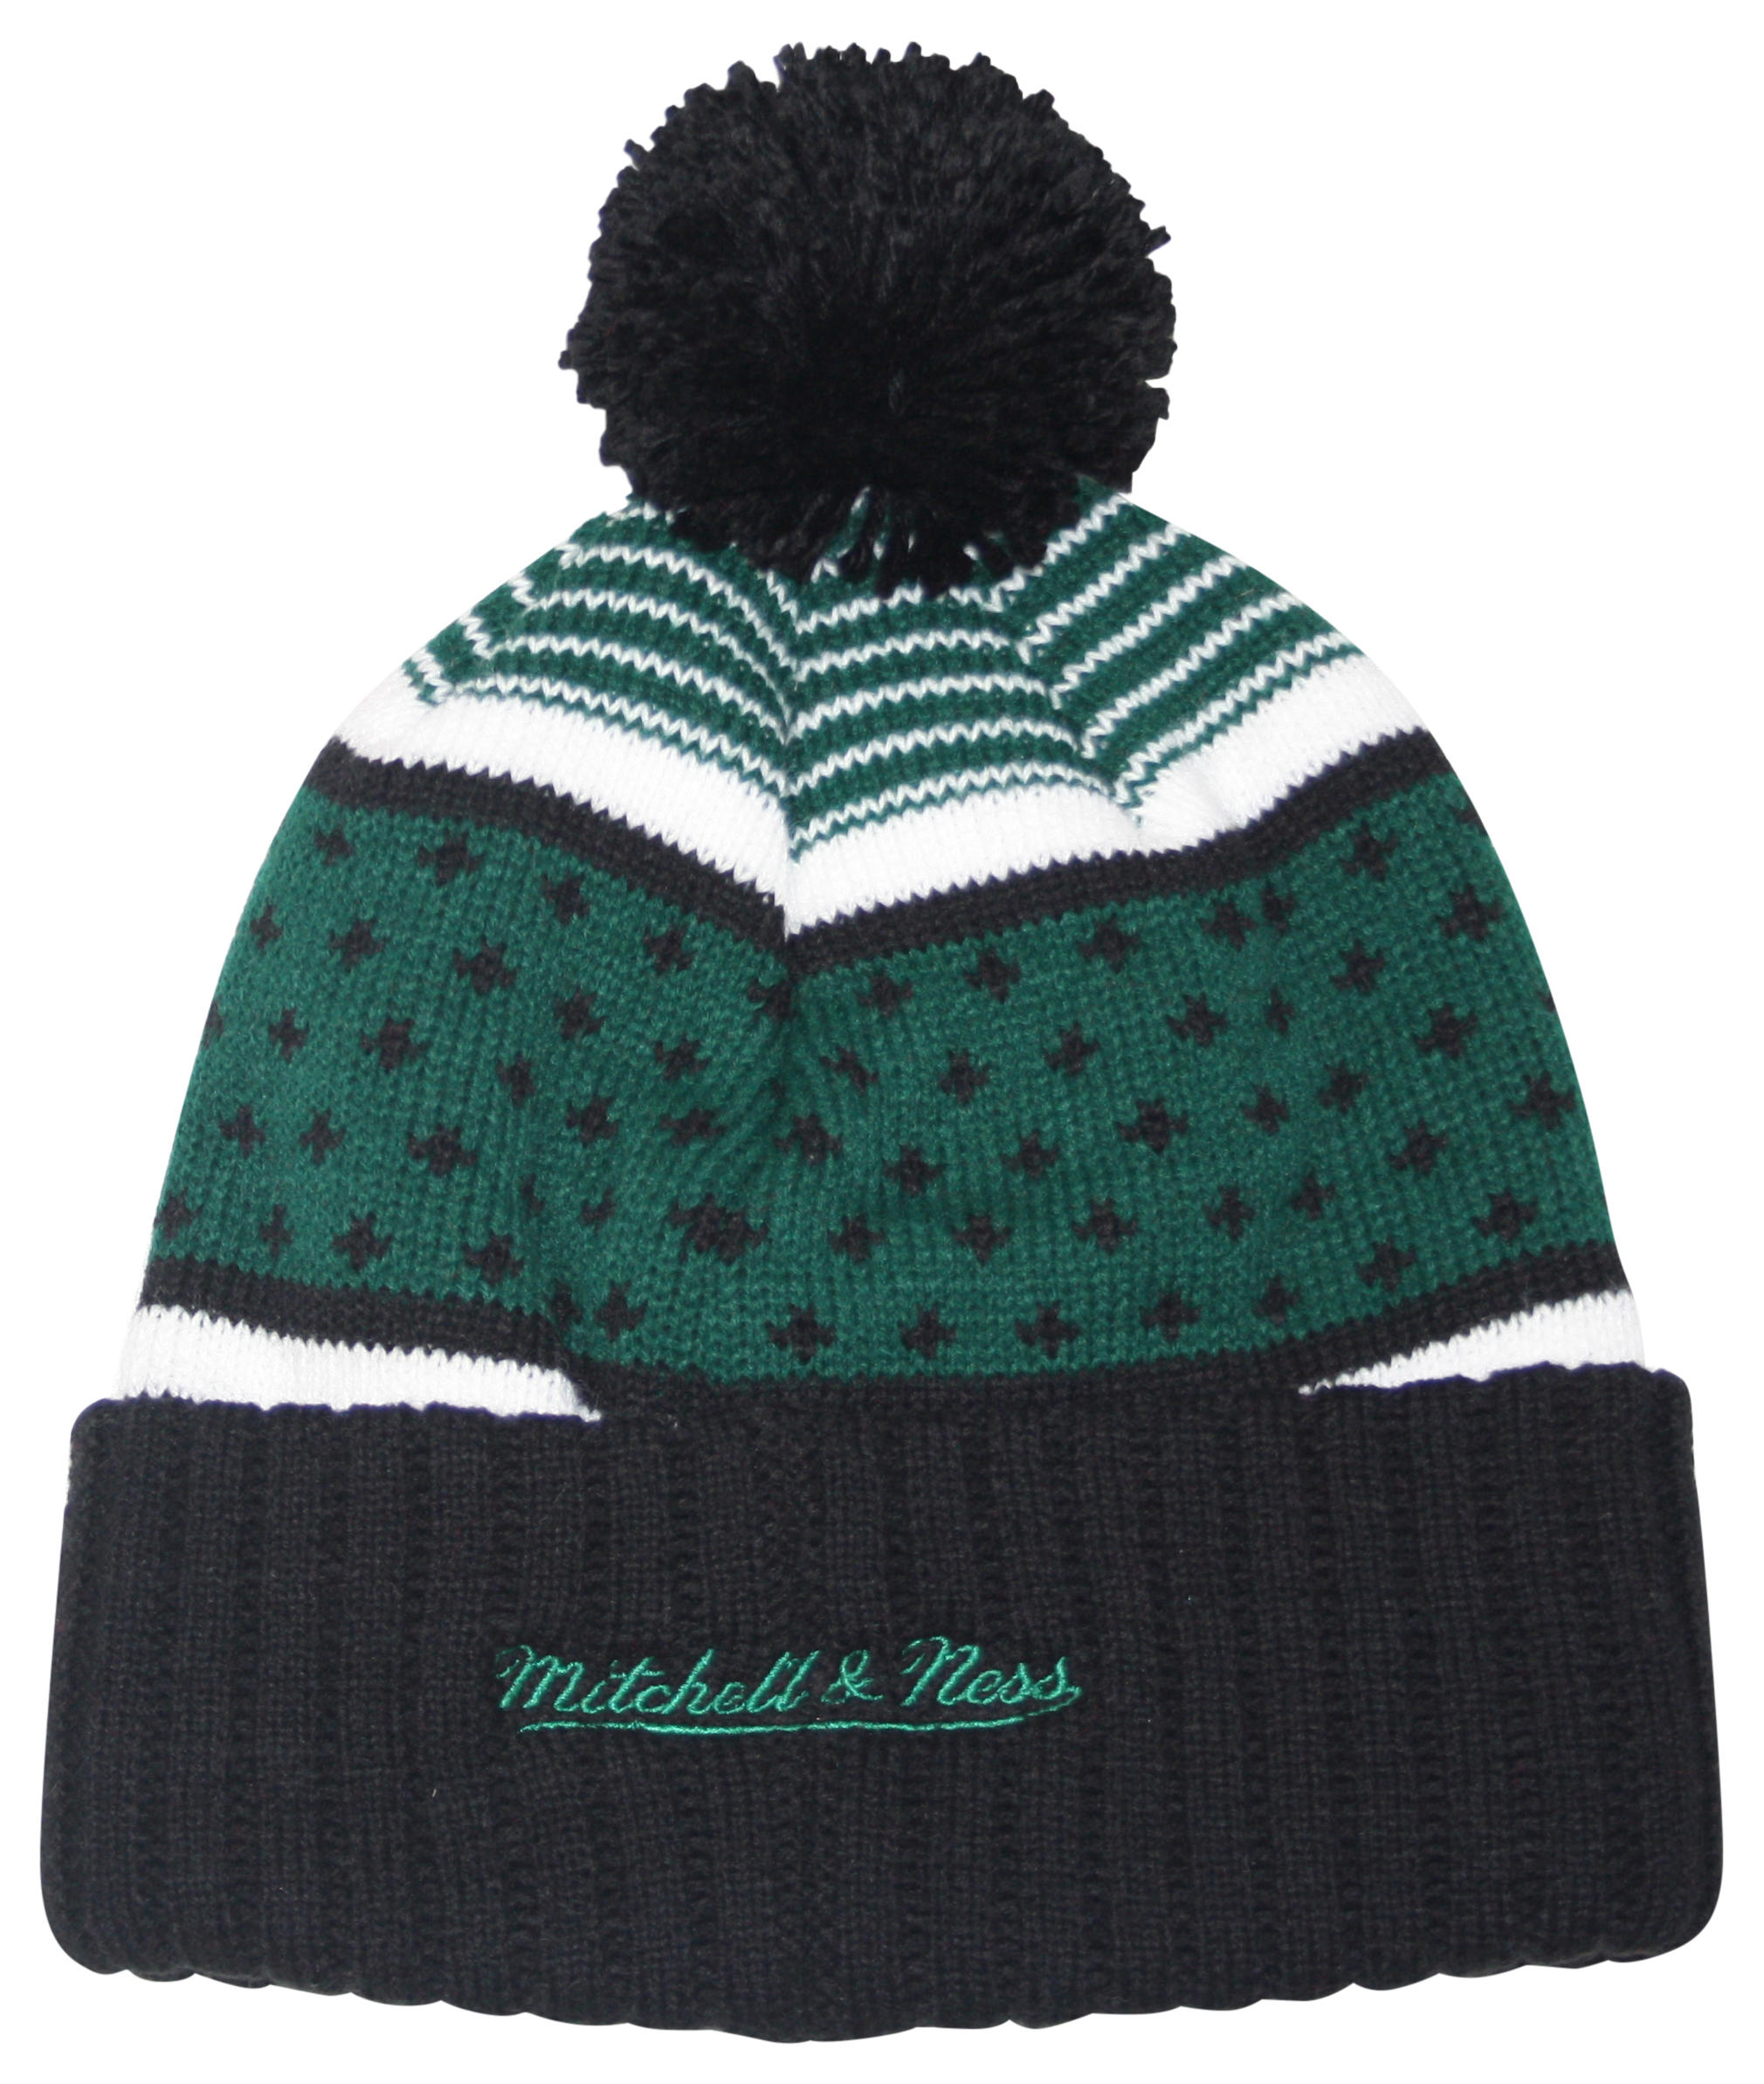 e9ecce0ac The Highlands Cuffed Pom Beanie Boston Celtics